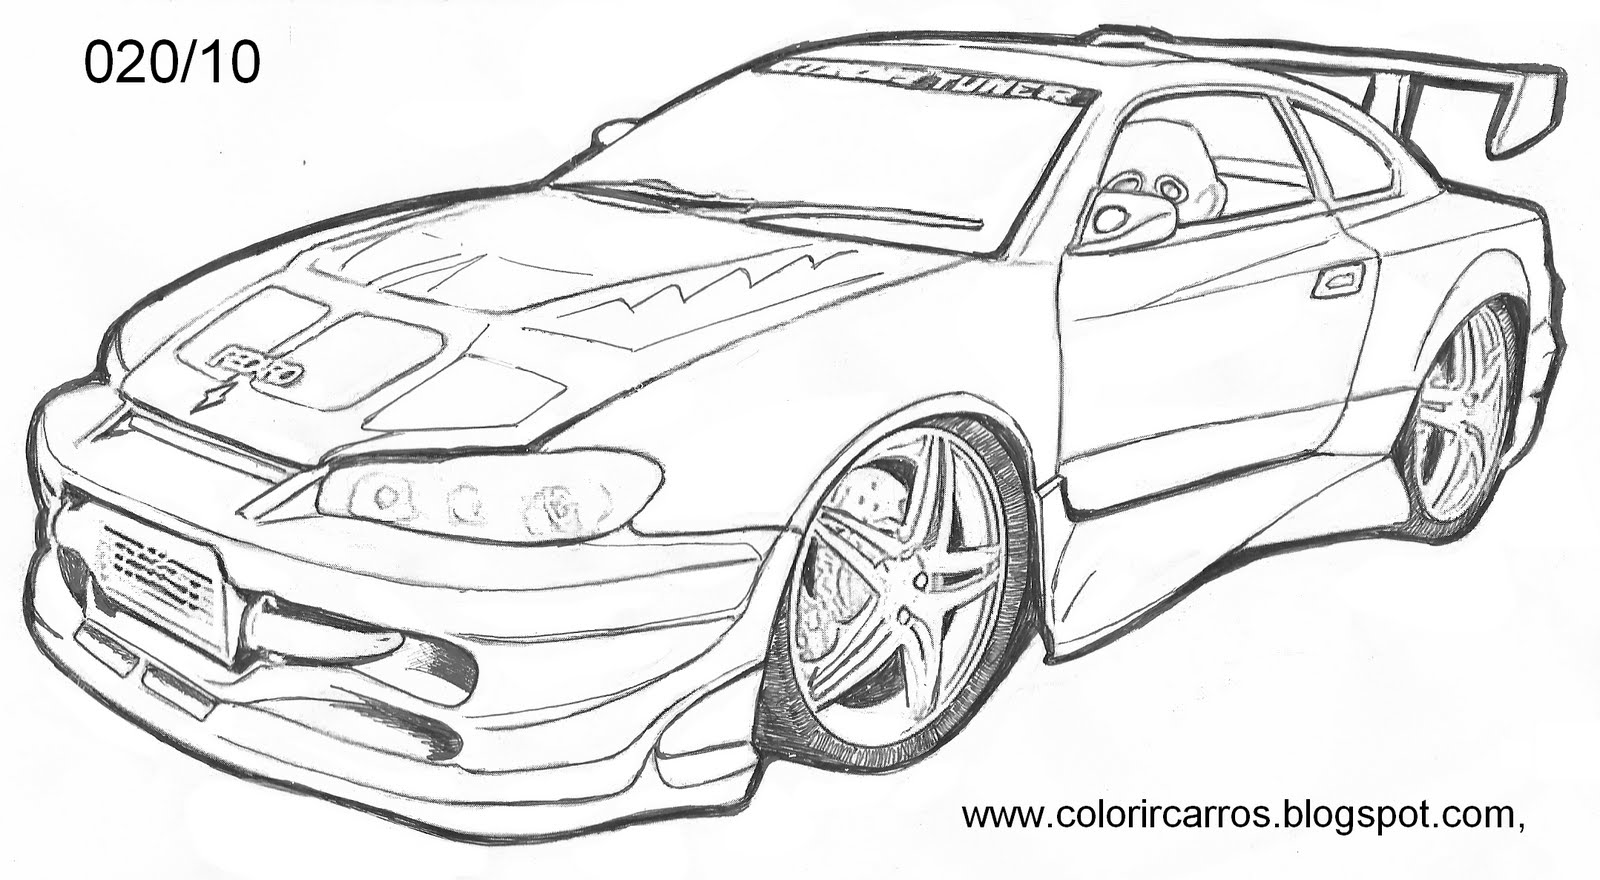 Camaro Coloring Books Adult Coloring Pages Camaro Coloring Page